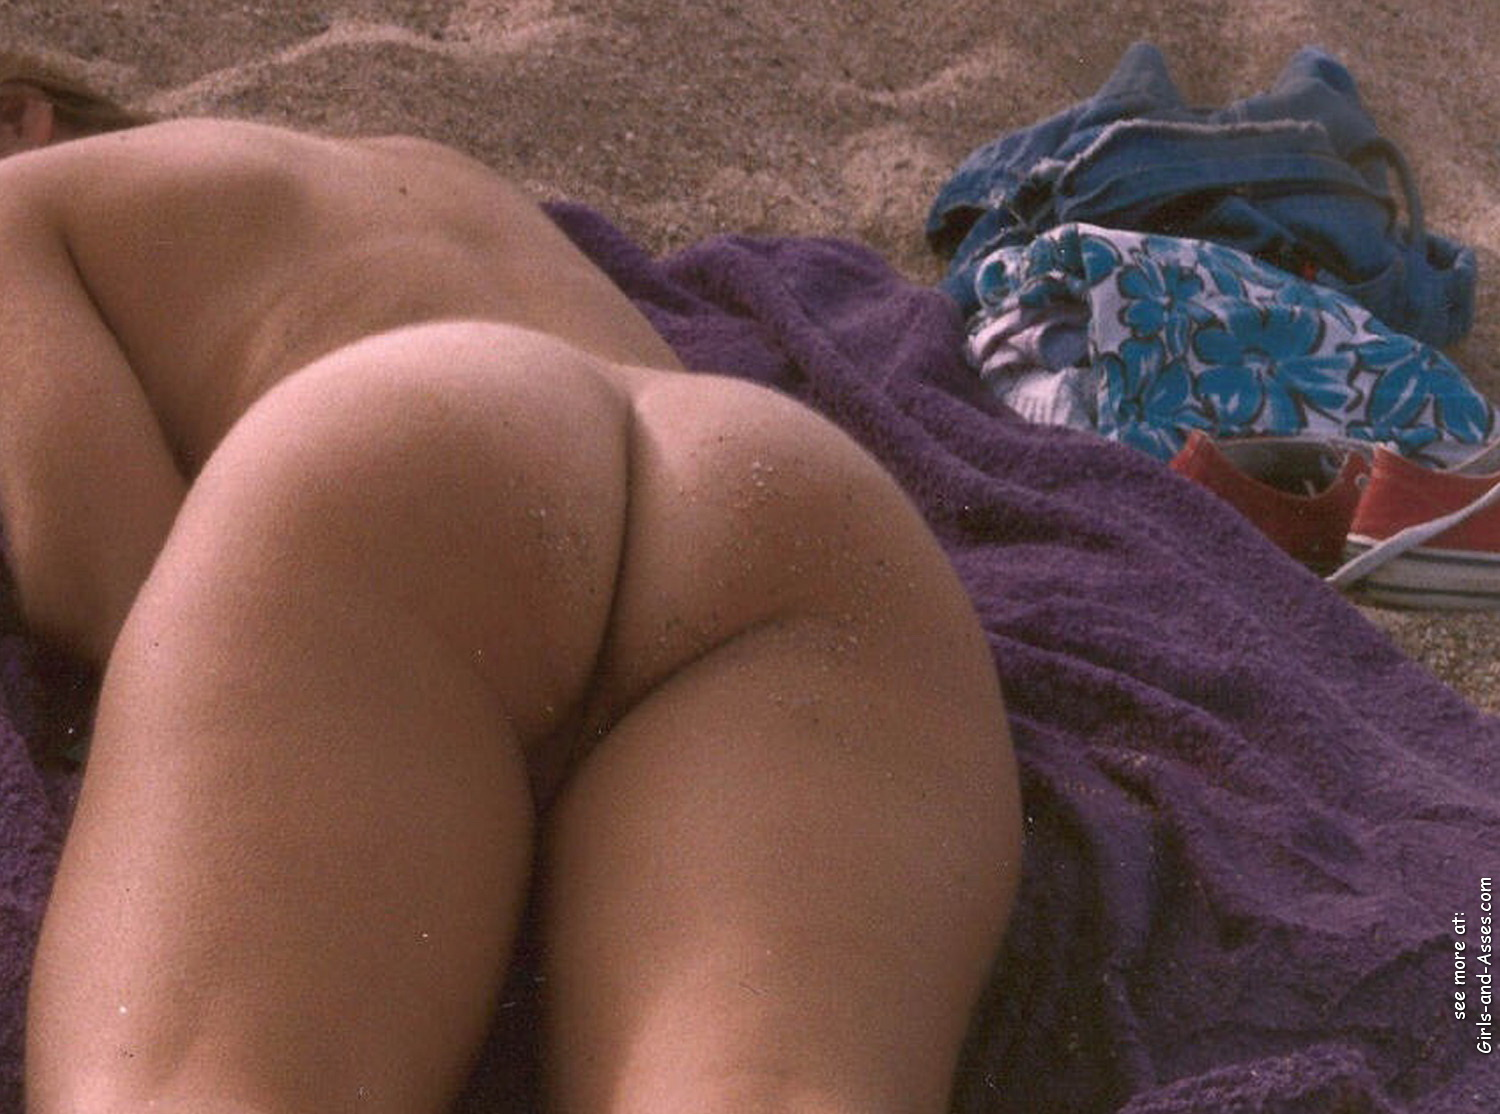 naked sunbathing tanning on the beach pic 03447